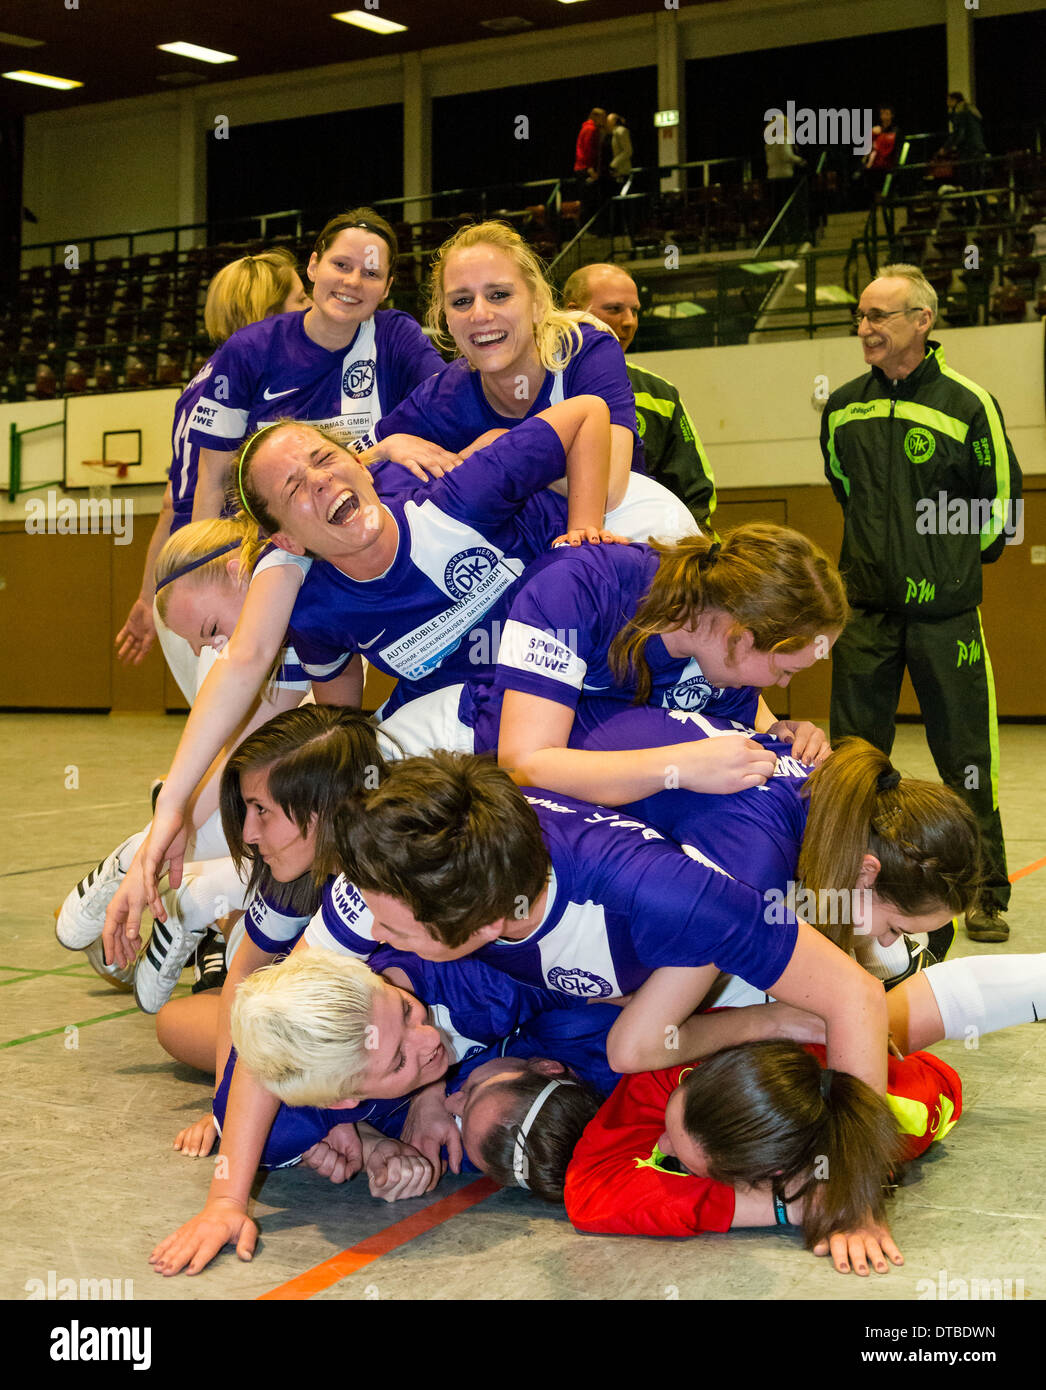 The women's football / soccer team of DJK Falkenhorst rejoice after their victory in a cup final. - Stock Image